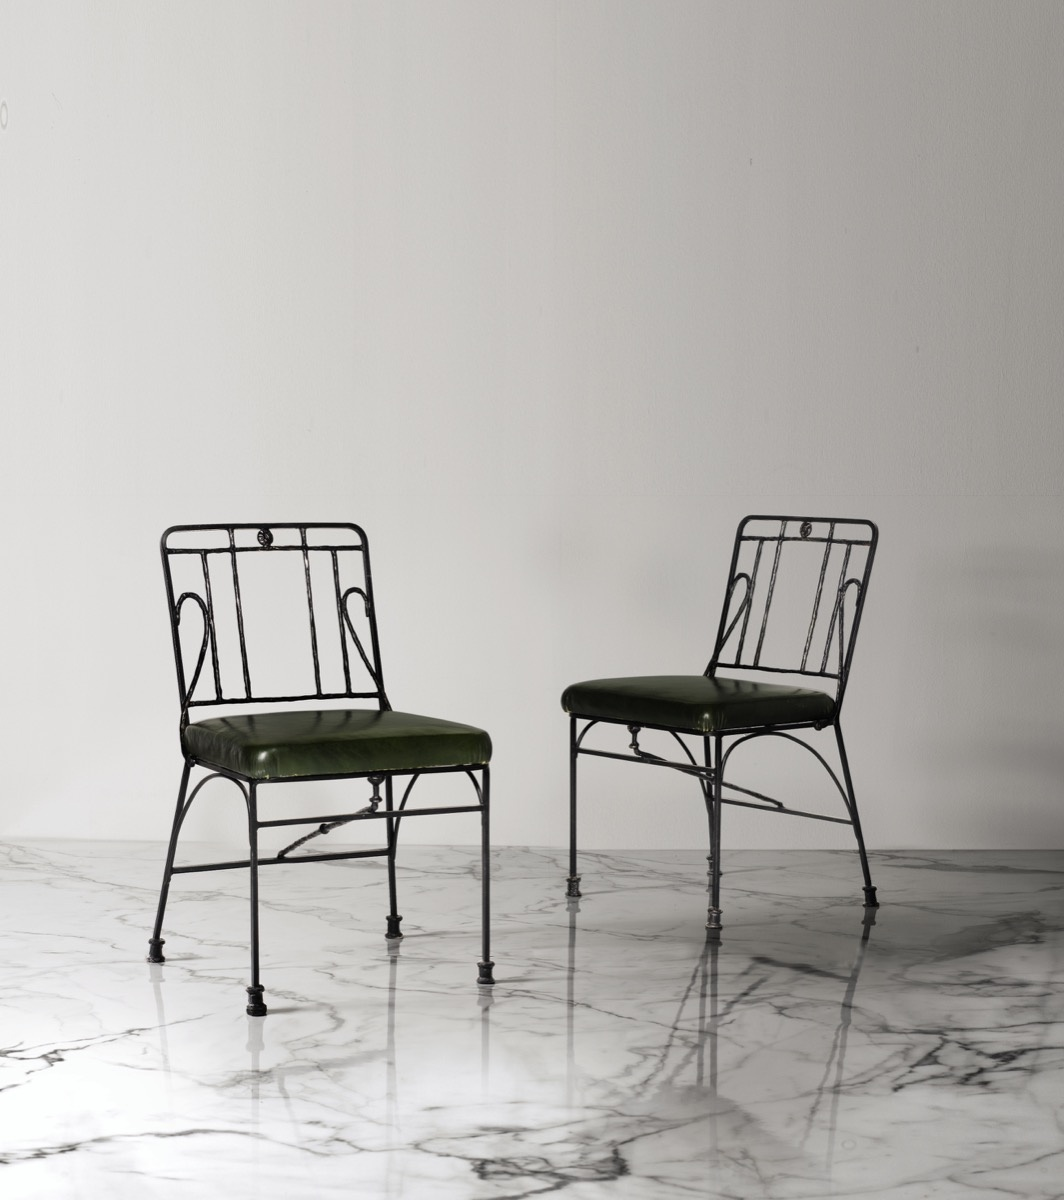 Diego Giacometti, Paire of chaises, 1983. Image courtesy of Sotheby's – Art Digital Studio.